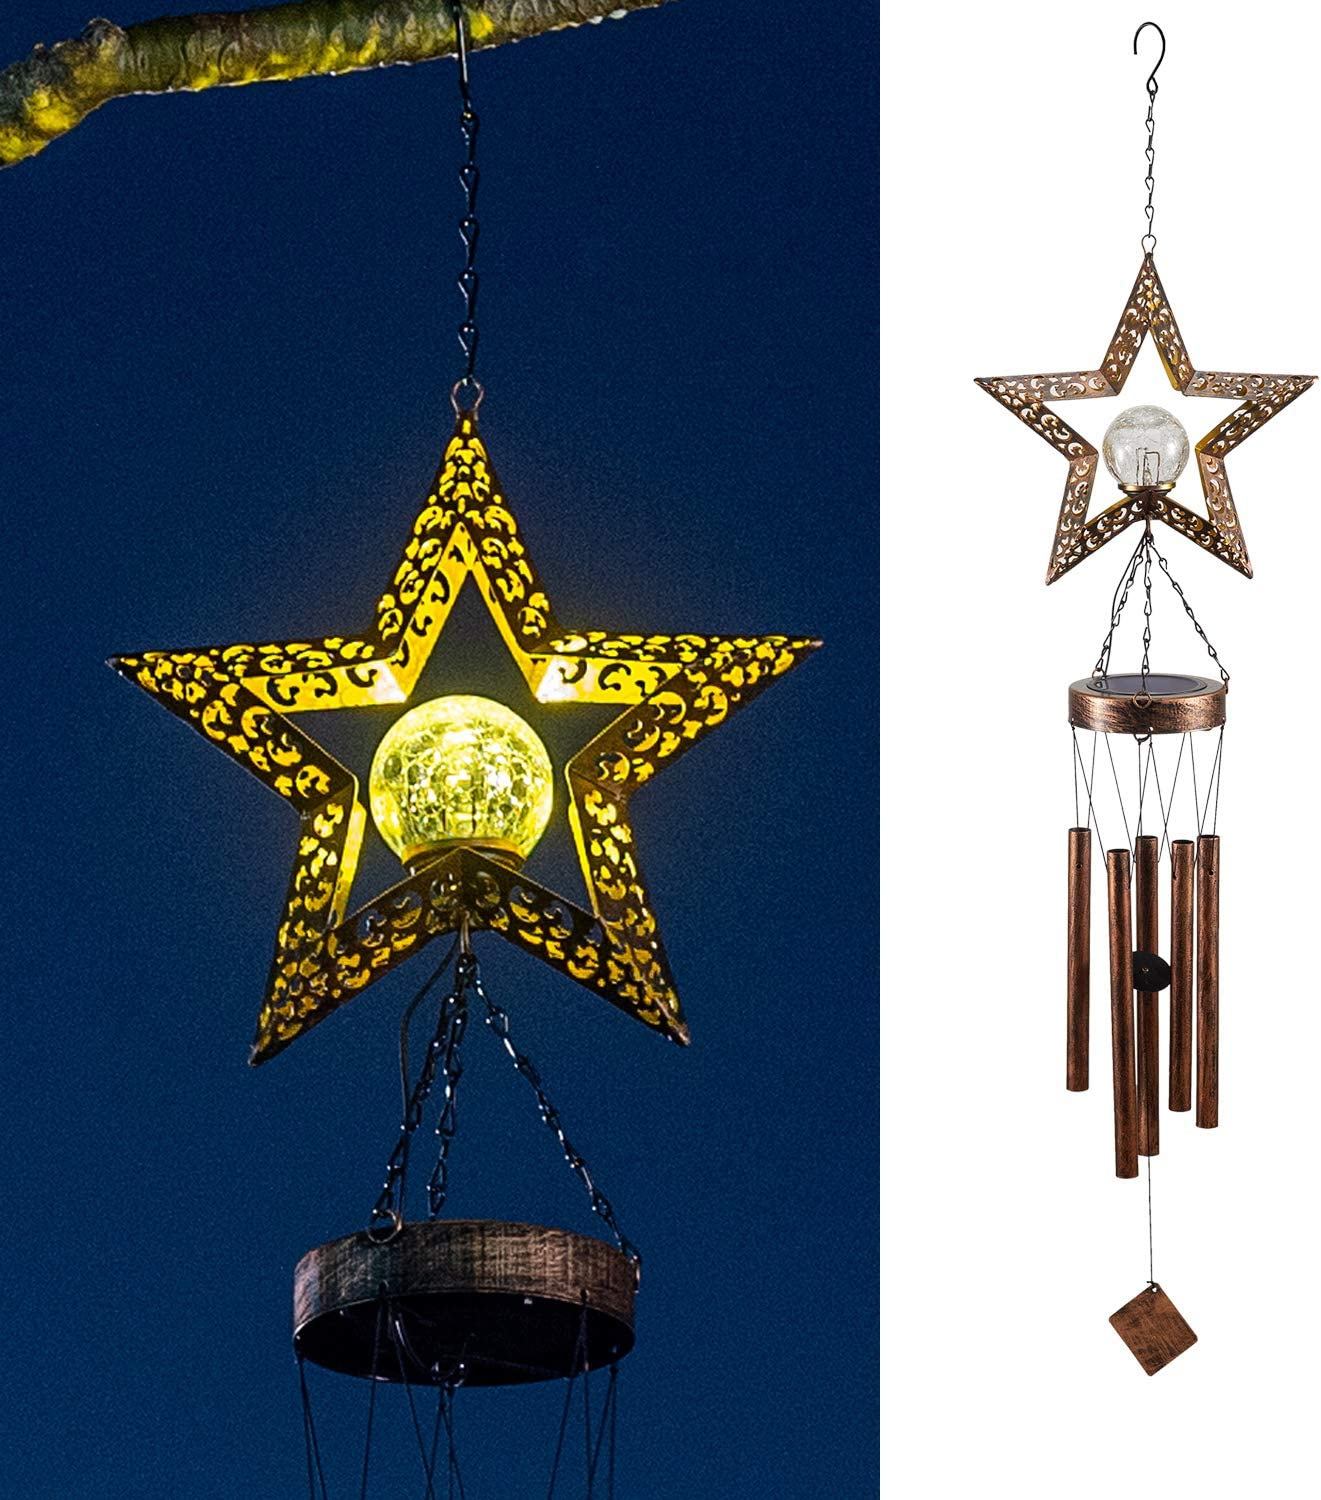 LeiDrail Solar Wind Chimes for Outside Hanging Star Crackle Ball Decoration Warm White LED Lights with Metal Tubes Waterproof Outdoor for Garden Patio Thanksgiving Yard Décor Memorial Gifts